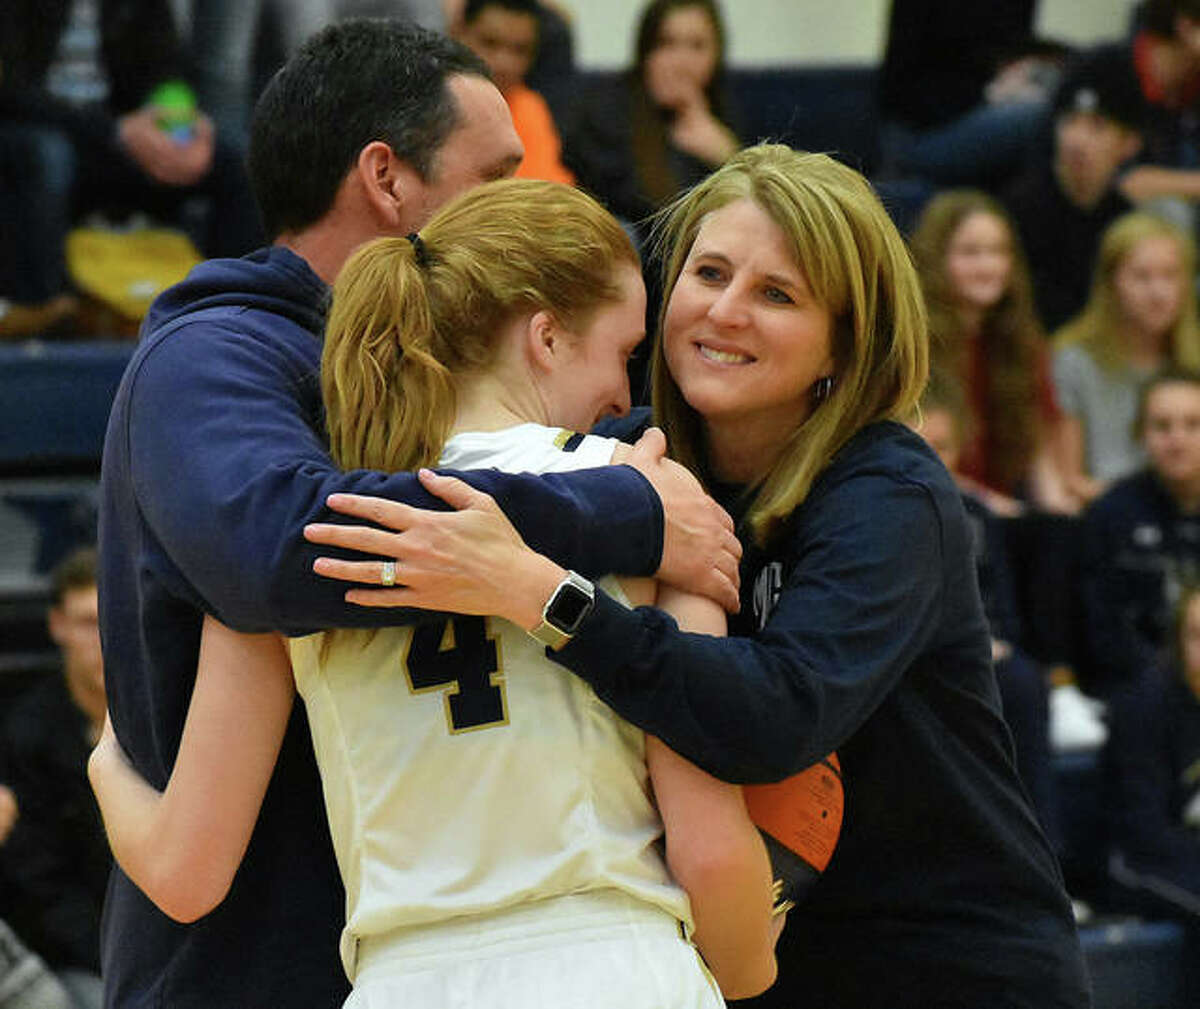 Father McGivney guard Anna McKee, center, is congratulated by her parents following Saturday's win. She scored 14 points to surpass 1,000 points for her career.